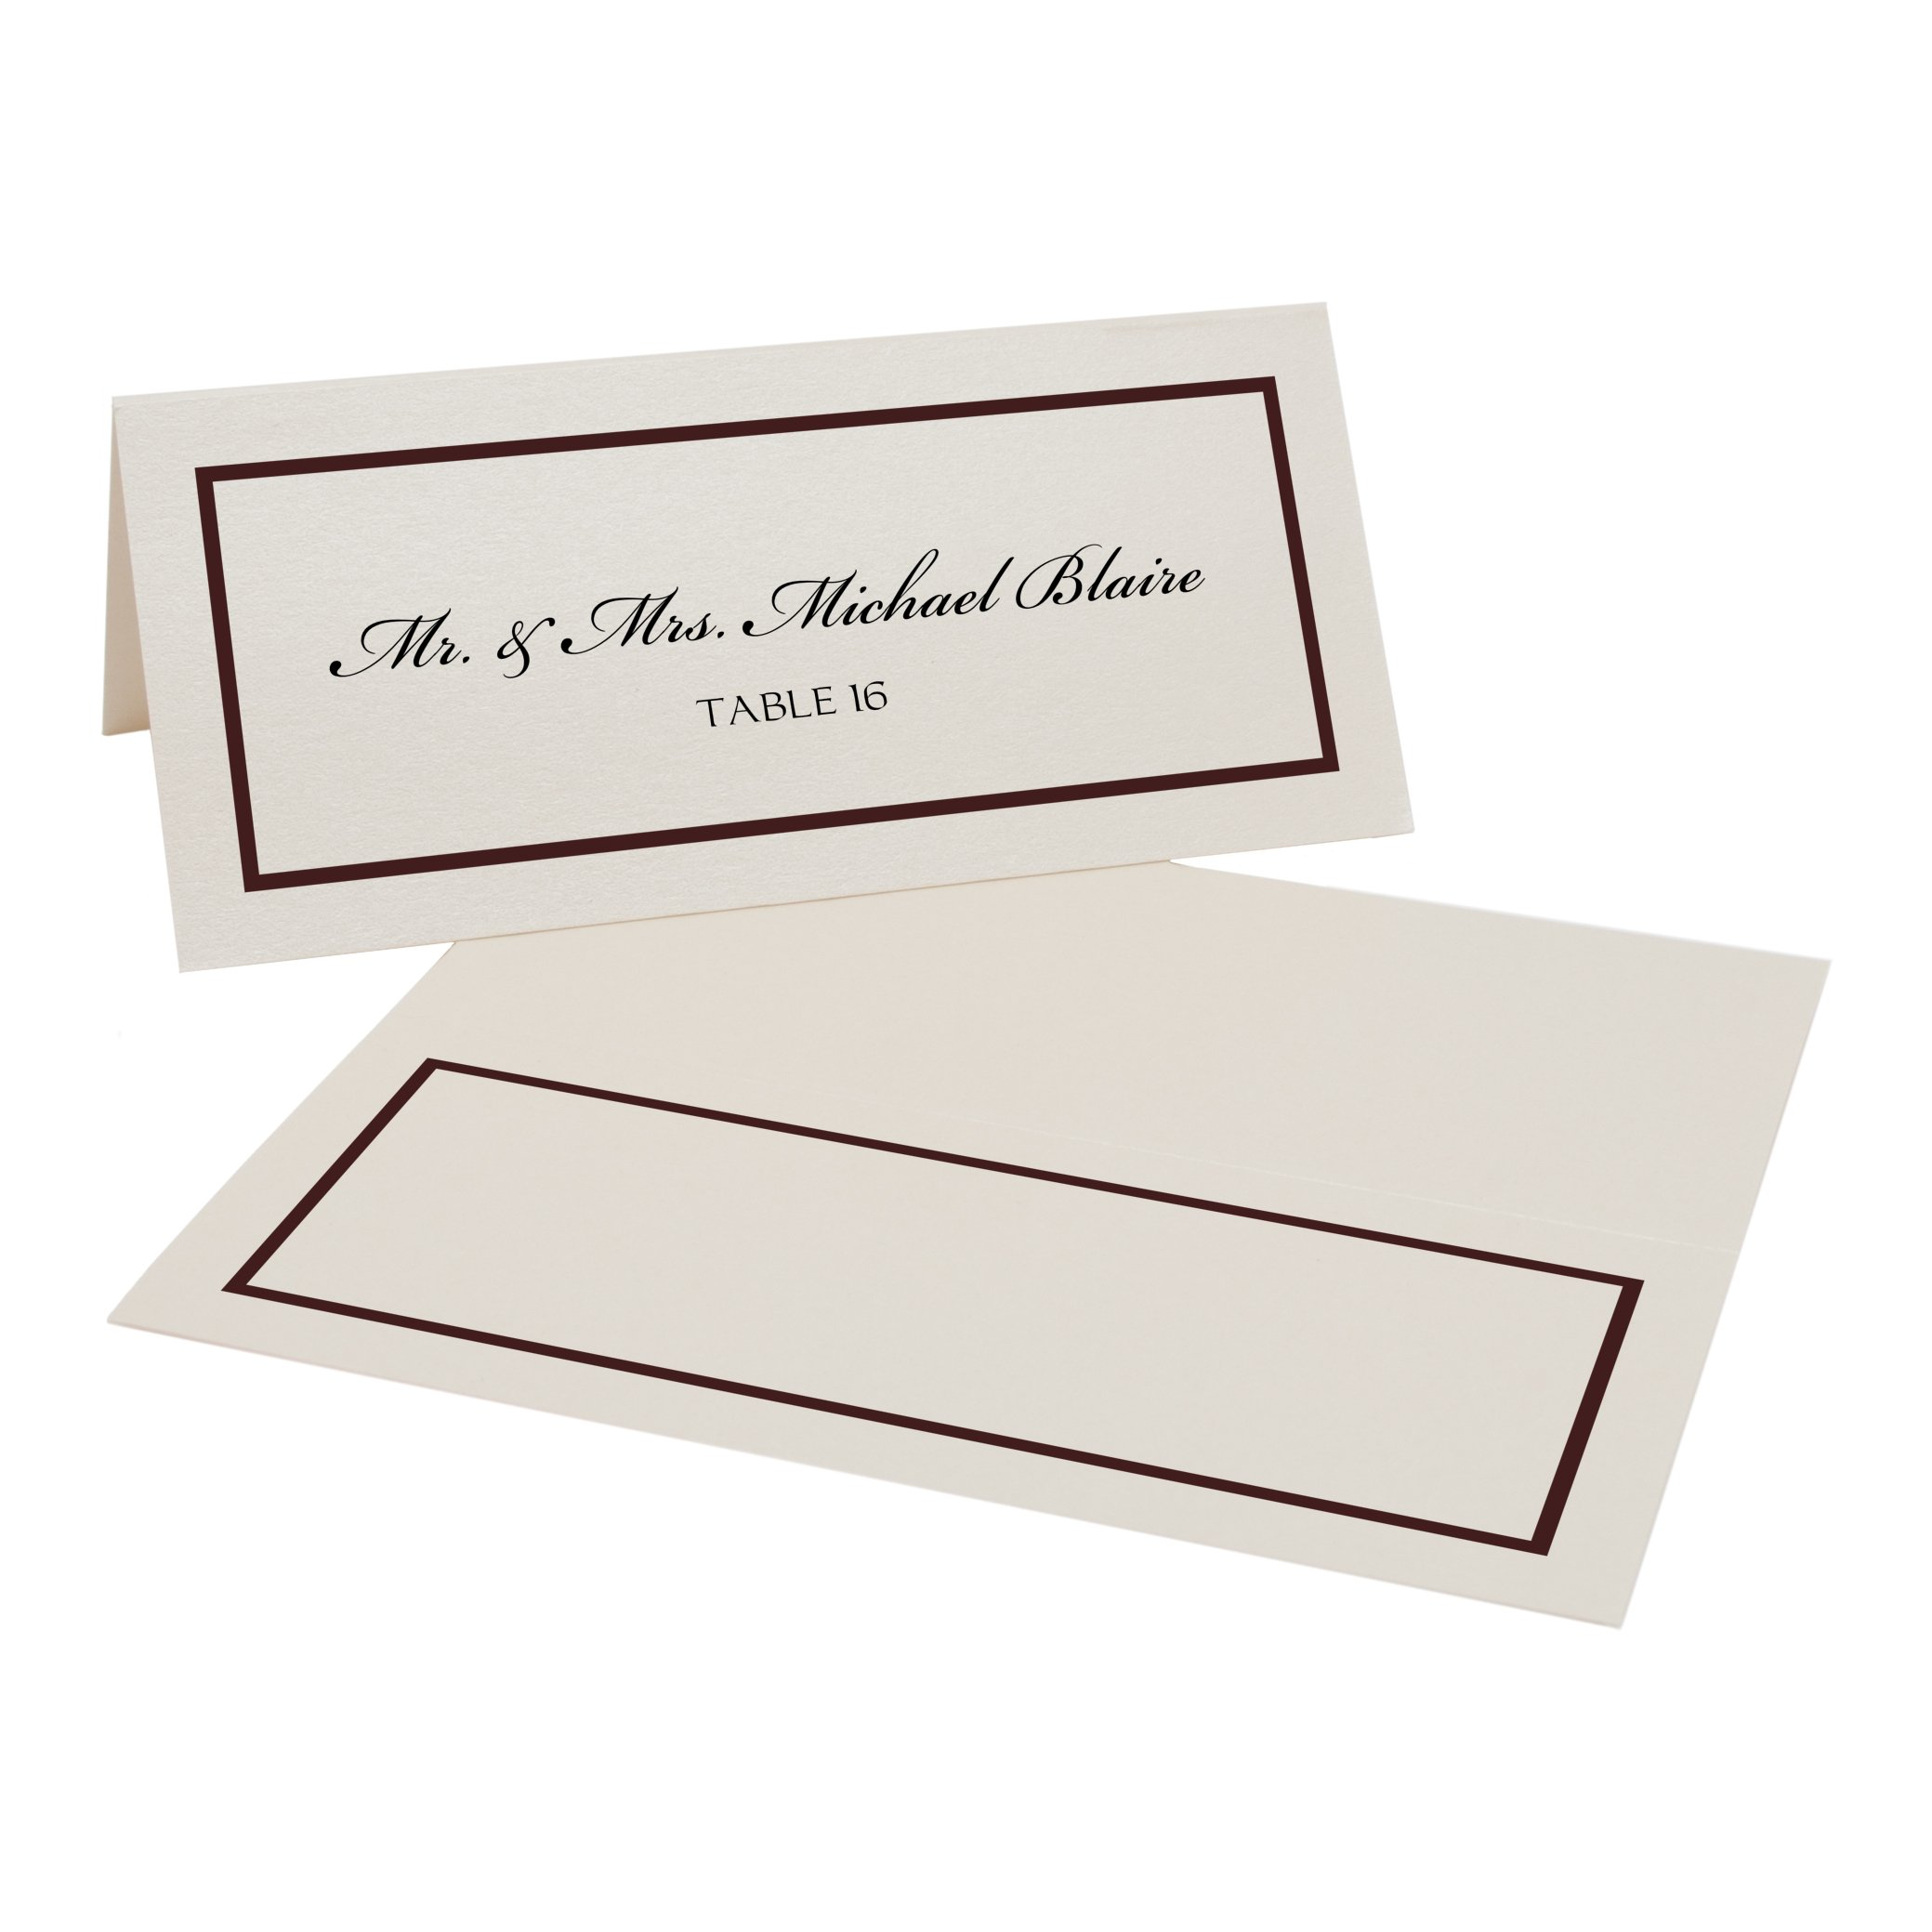 Single Line Border Place Cards, Champagne, Chocolate, Set of 375 by Documents and Designs